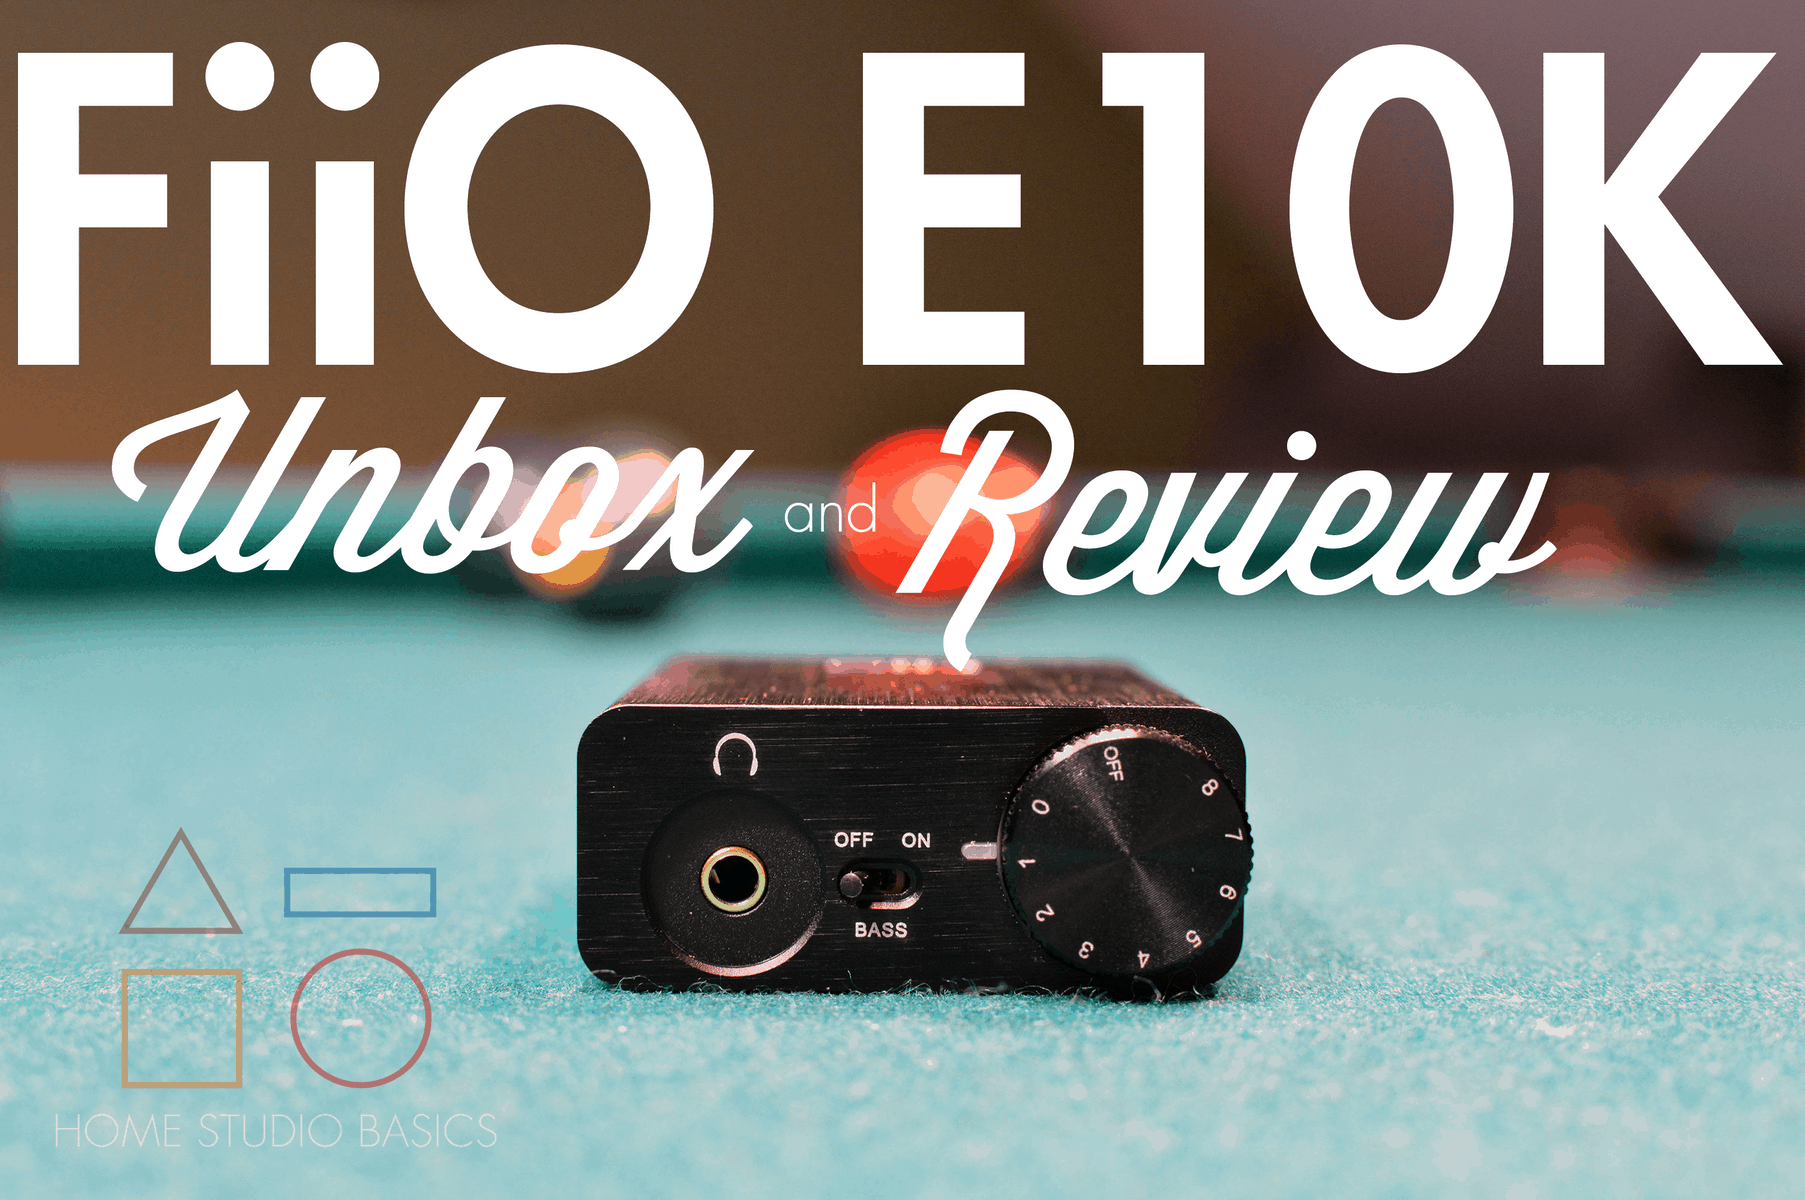 FiiO E10K USB DAC Review